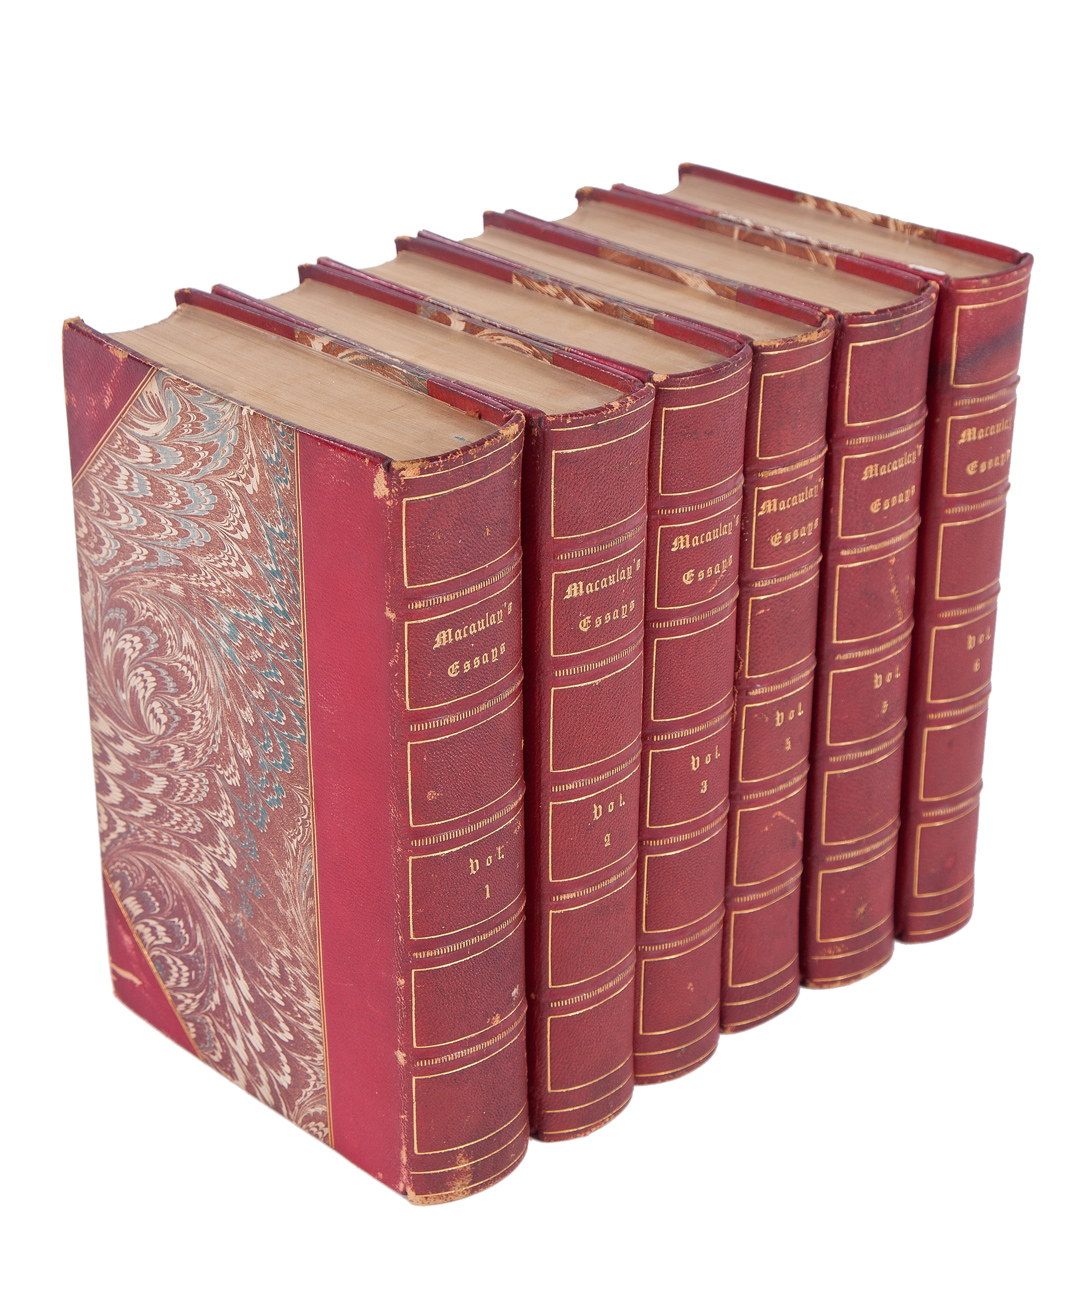 volumes of essays by macaulay kurtz collection 6 volumes of essays by macaulay